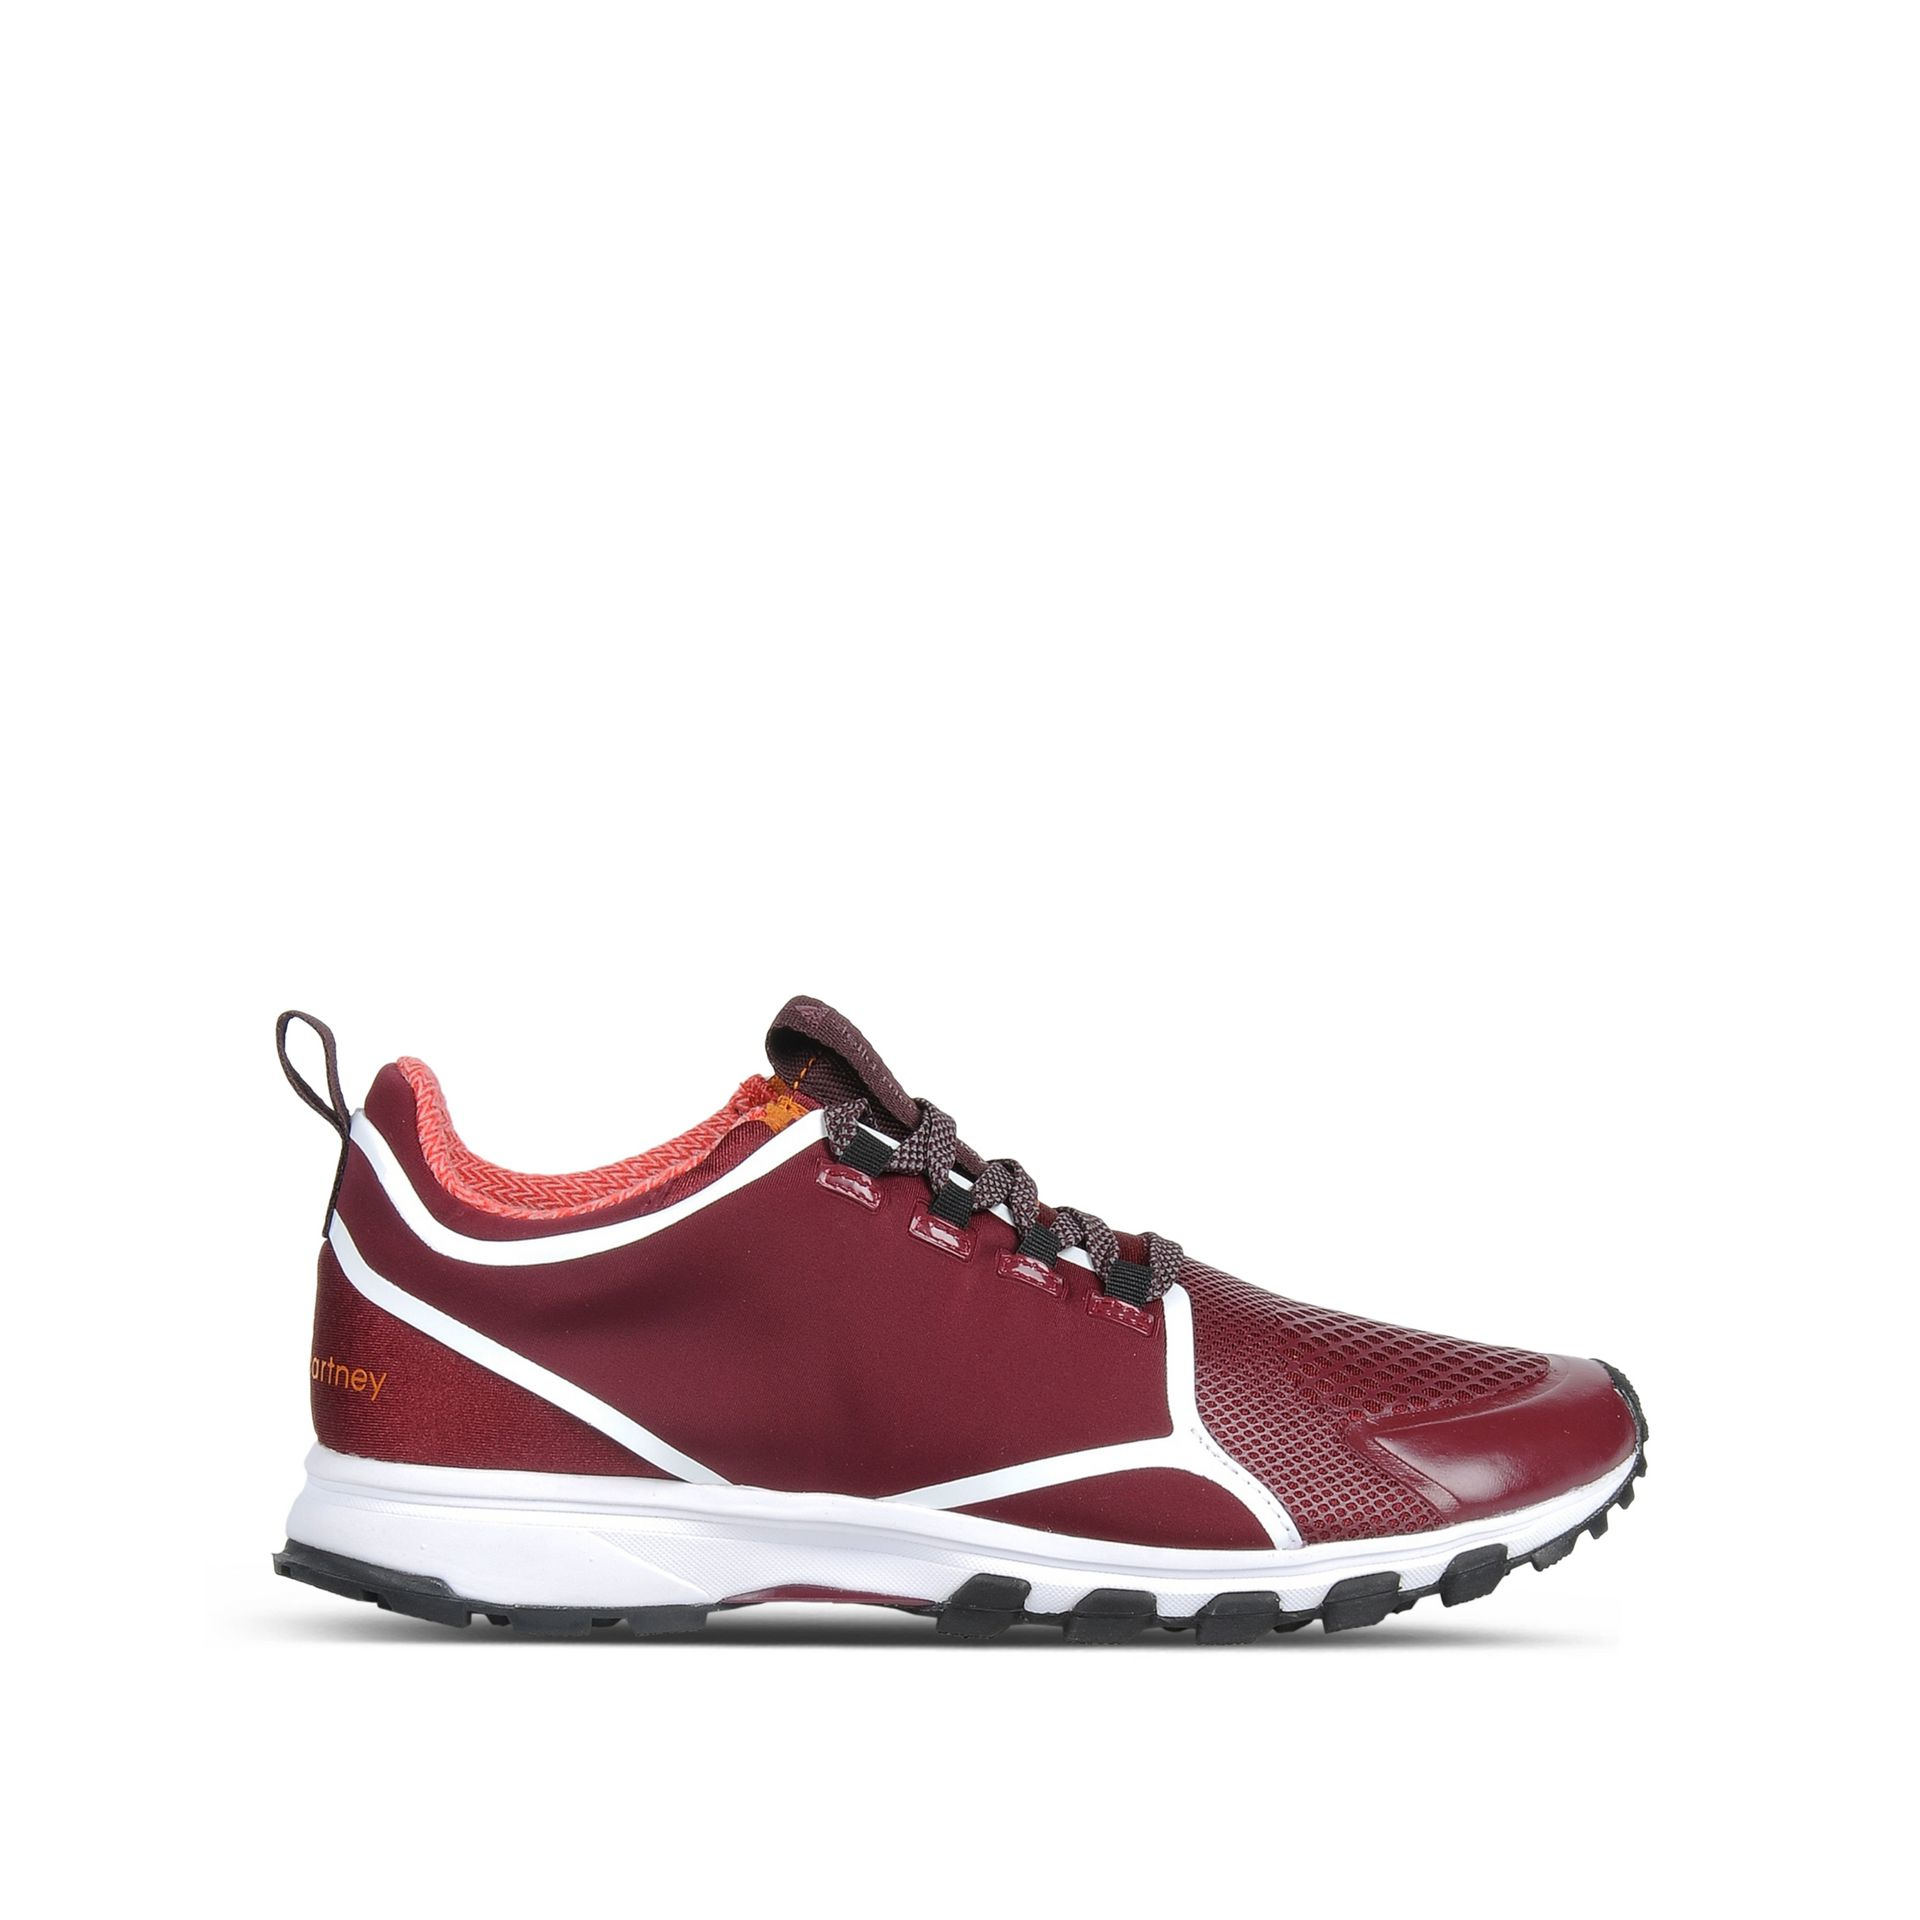 adidas by stella mccartney 39 adizero xt 39 sneakers in red wine lyst. Black Bedroom Furniture Sets. Home Design Ideas